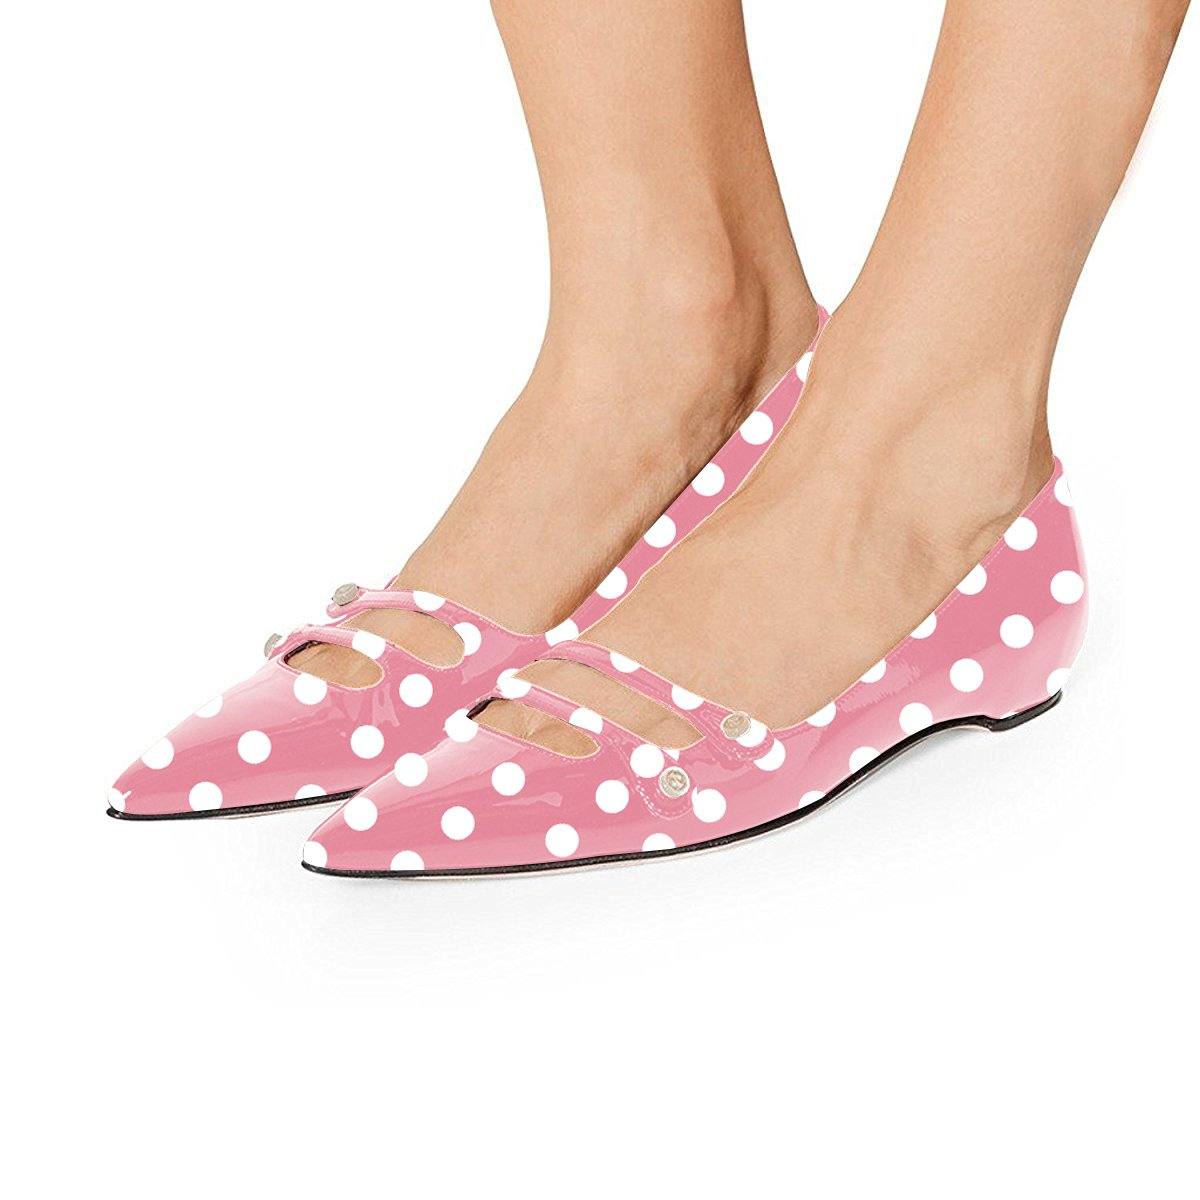 YDN Women Pointed Toe Slip on Flats Hidden Low Heels Pumps Comfort Shoes with Straps B07F823FJV 14 M US|Pink Polka Dots